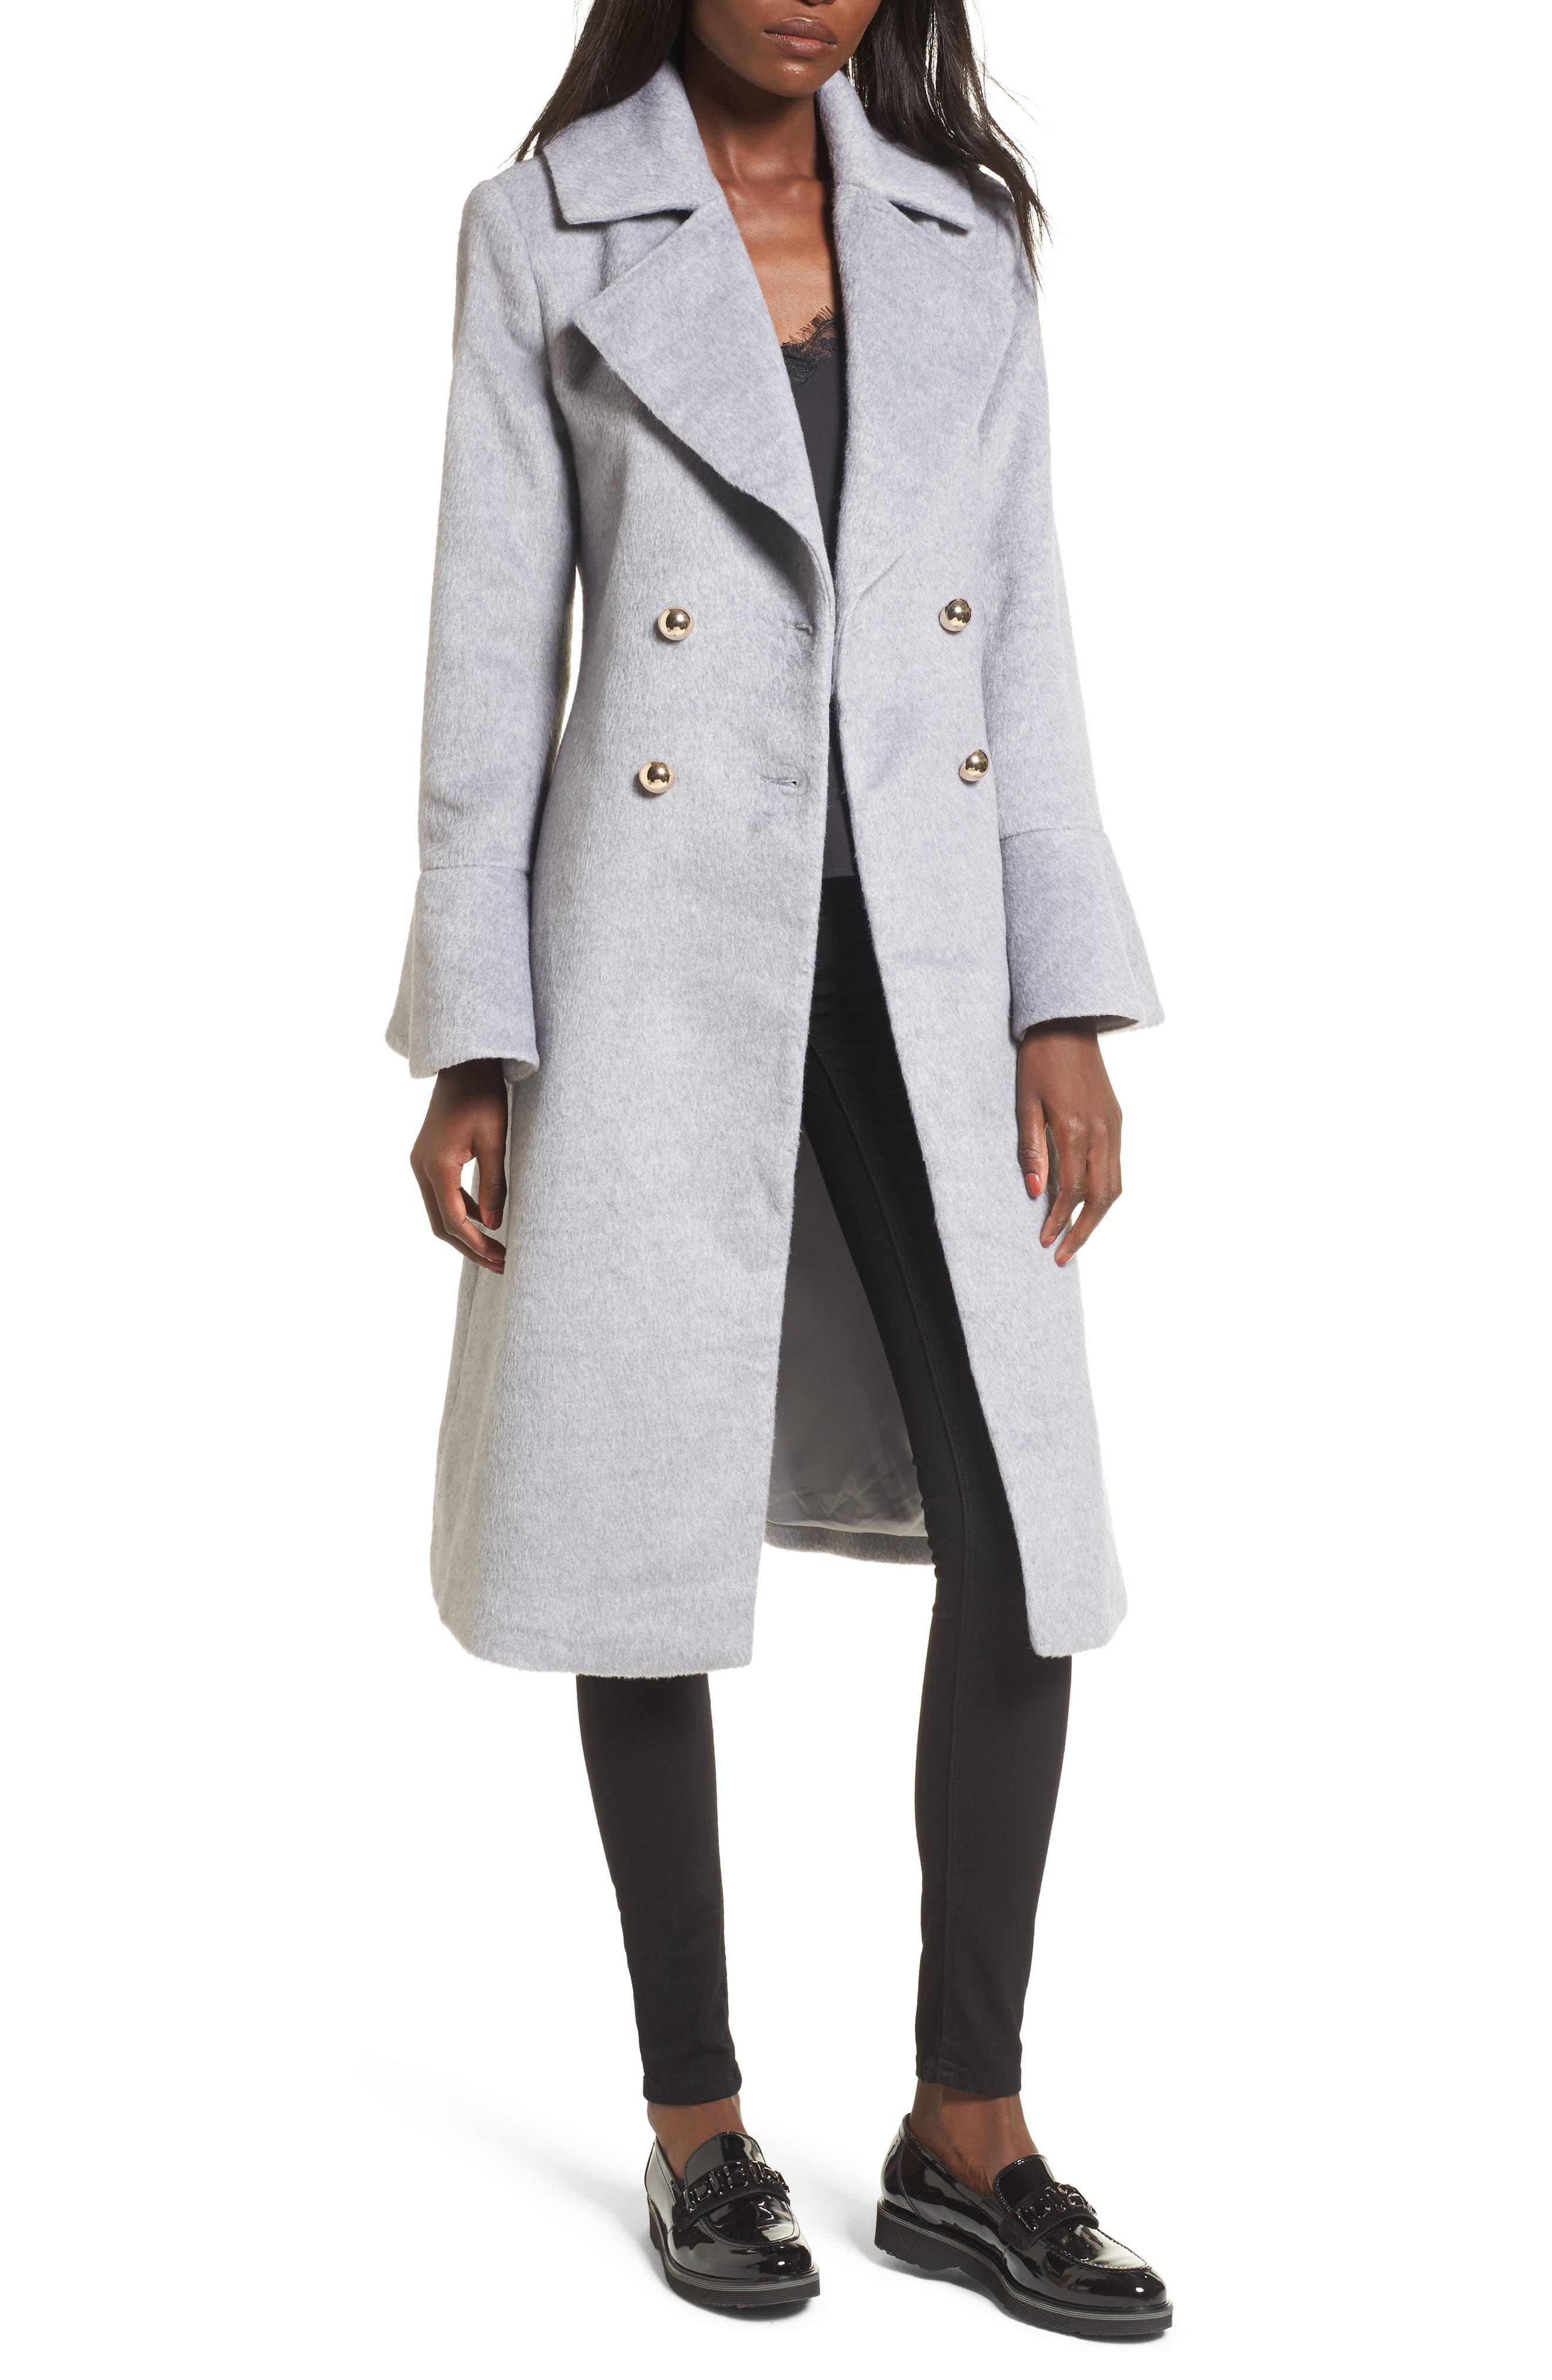 Intuition Water Repellent Coat,                         Main,                         color, 020